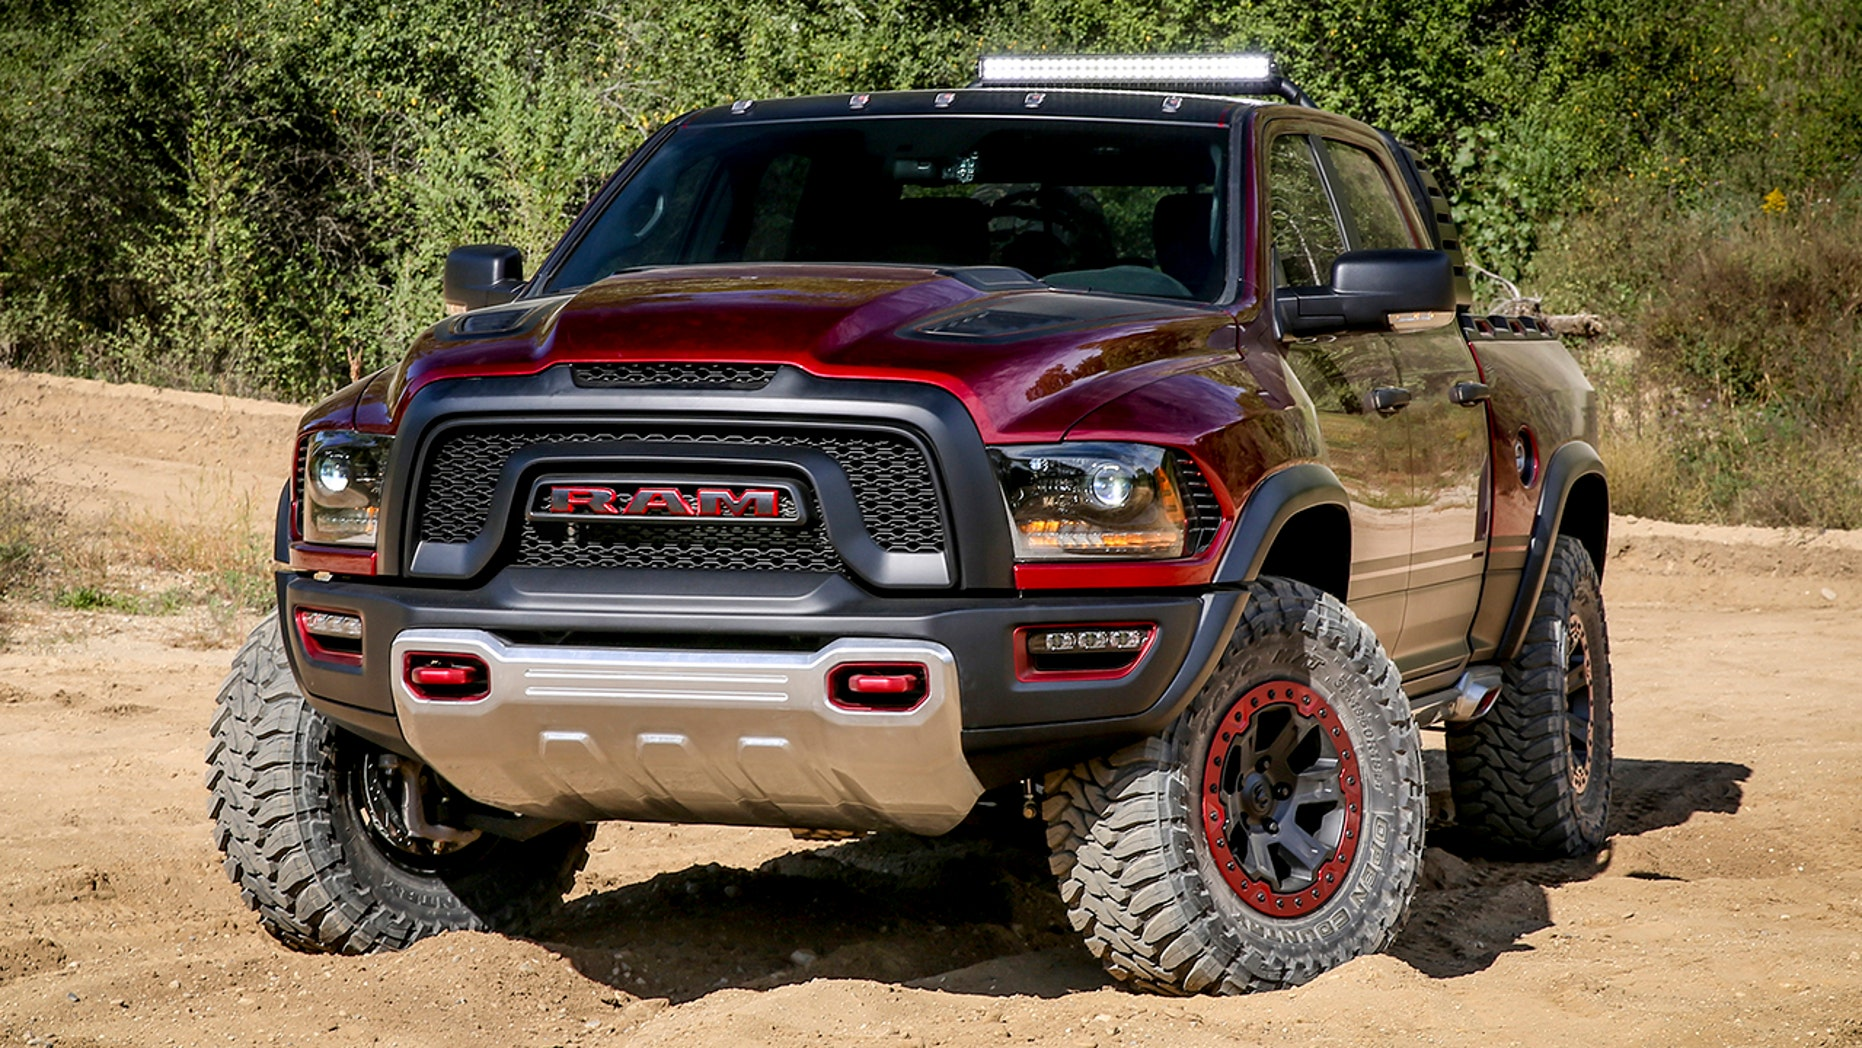 The Ram Rebel TRX concept was revealed in 2016